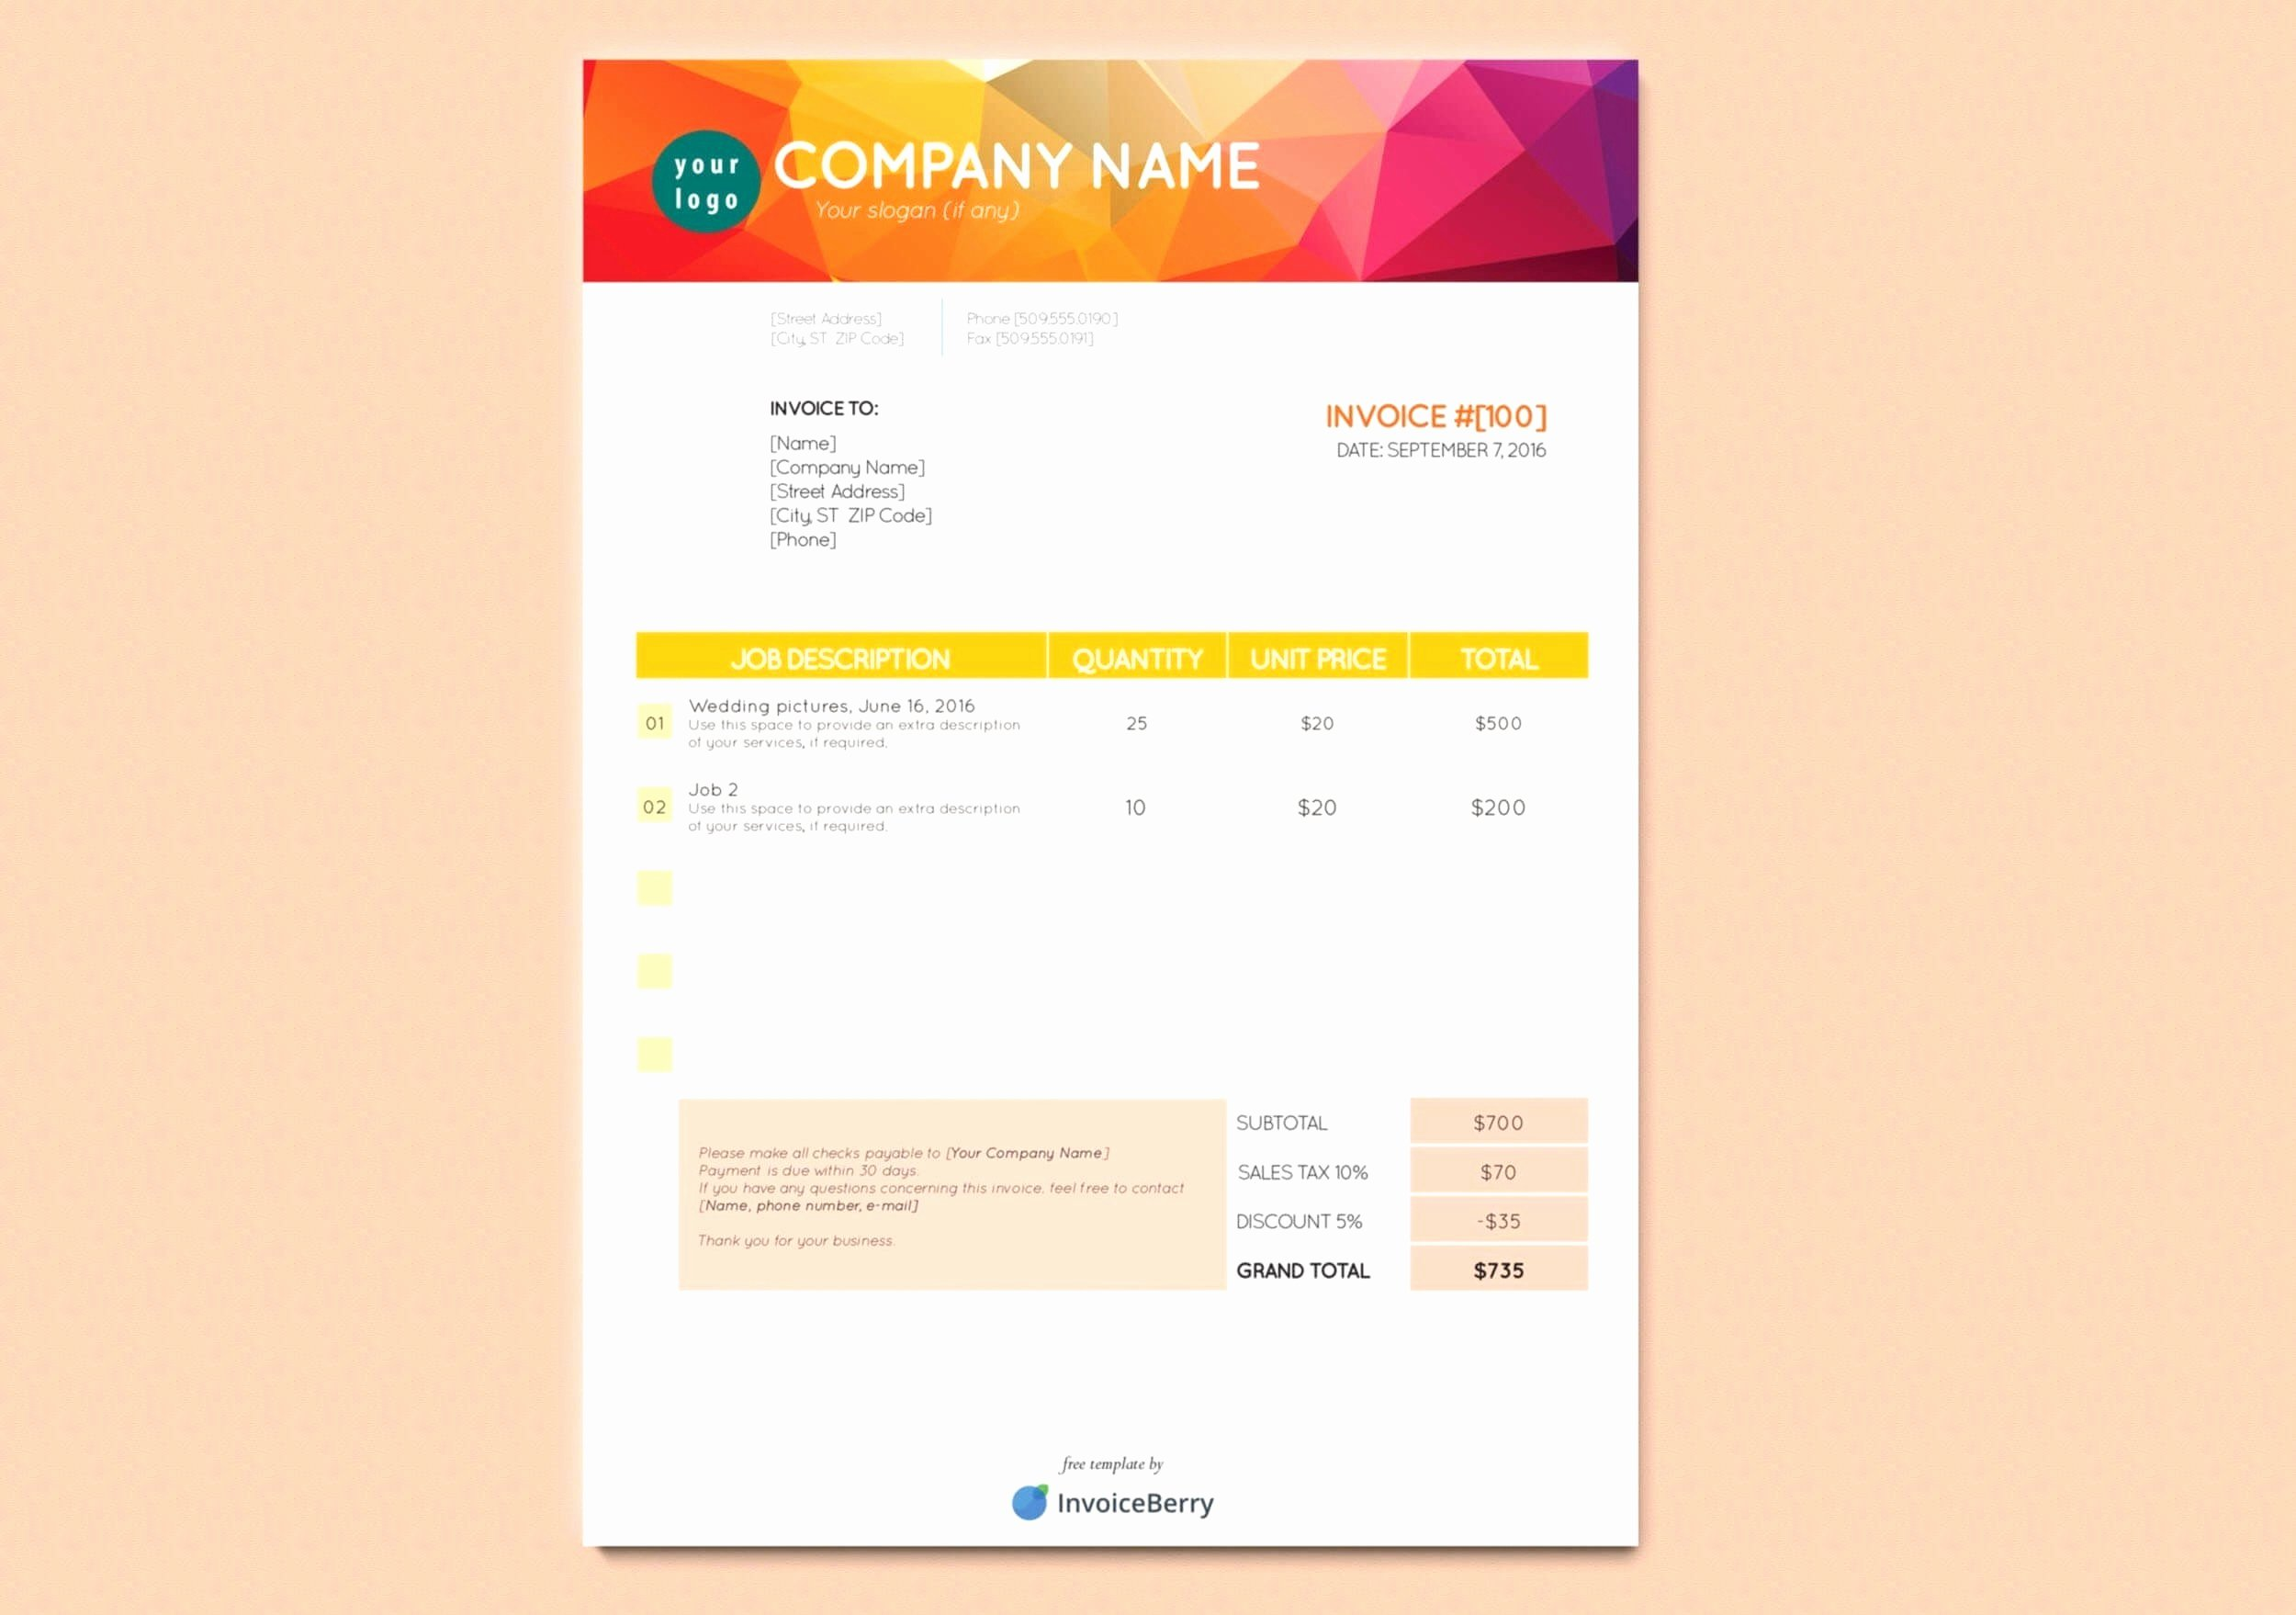 Freelance Design Invoice Template Best Of Freelance Graphic Design Invoice Template Pdf Resume